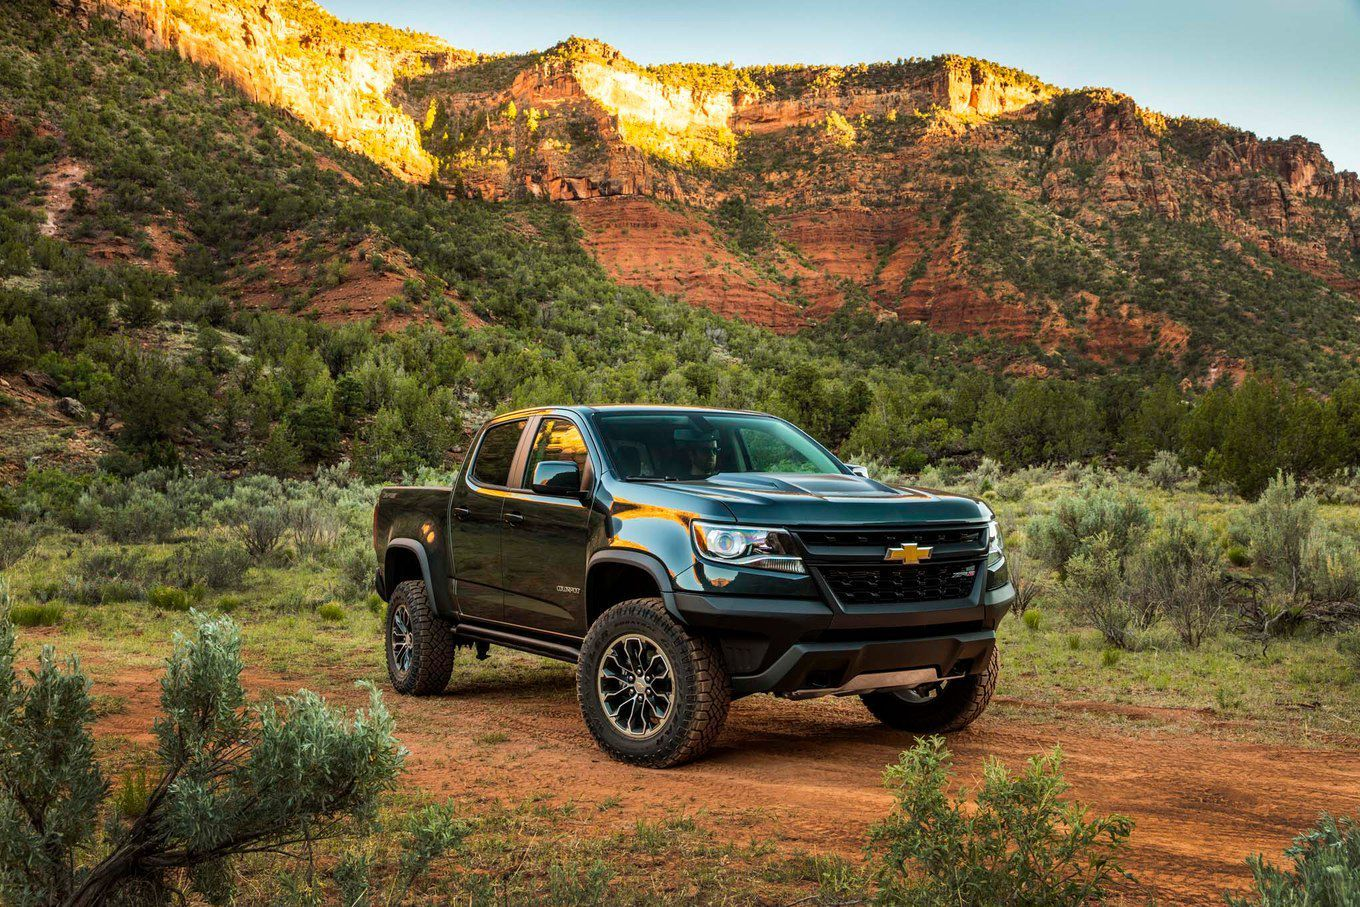 Pin By Ayrton West On Lifted Chevy Gmc Trucks In 2020 Chevy